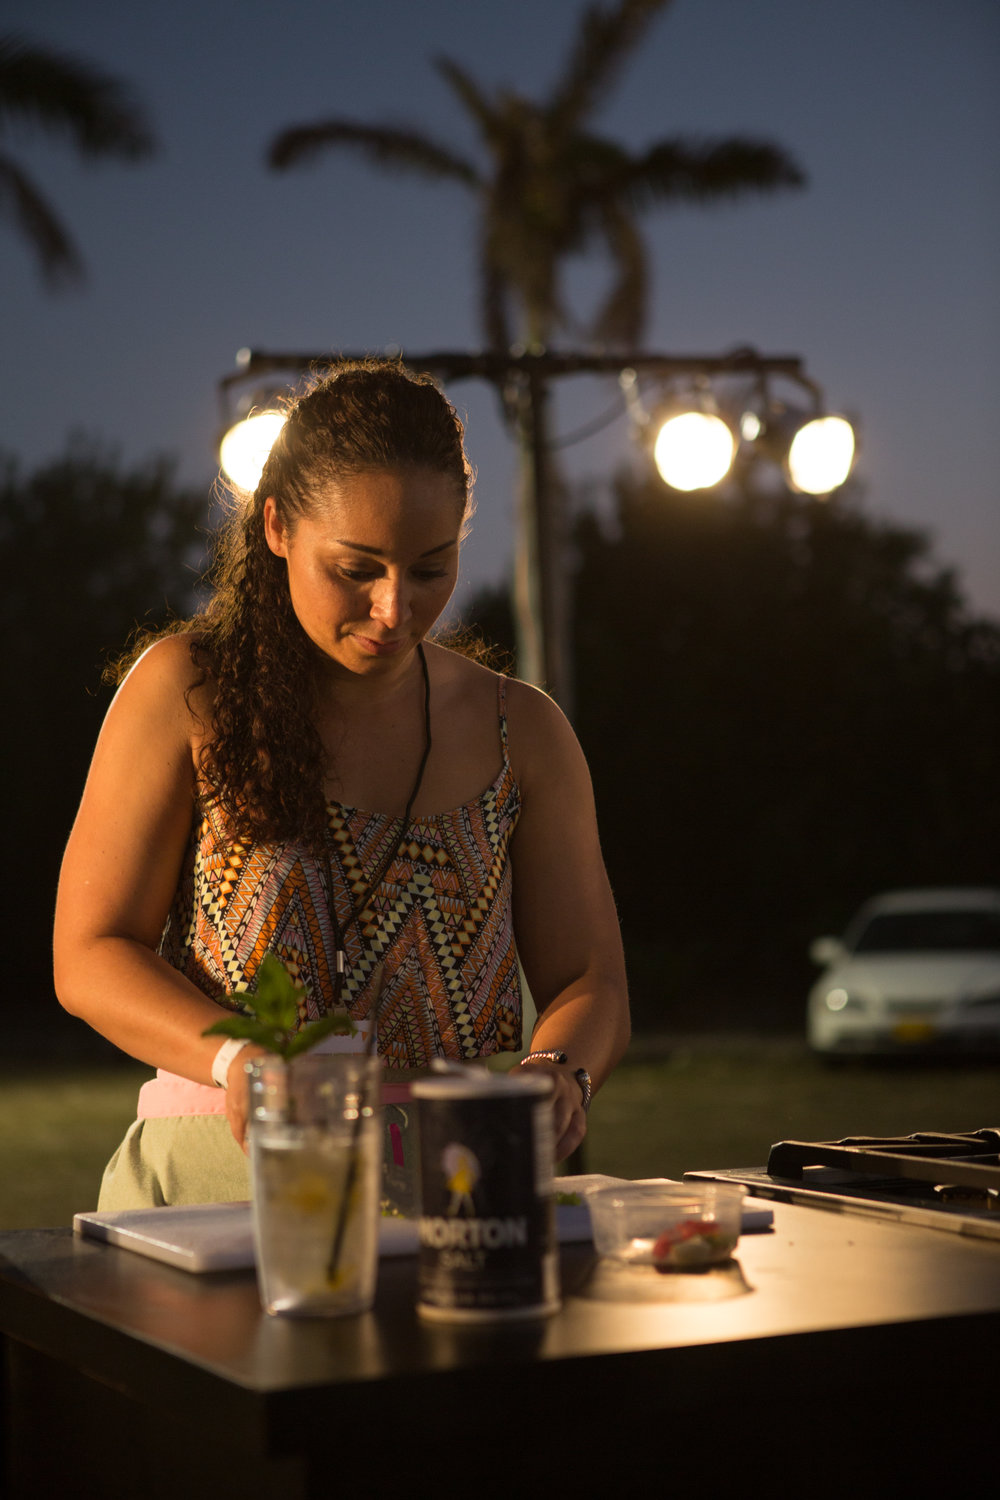 Doing my menial sous chef task of chopping garlic and seasoning peppers  Photo credit: Chad Munro of Picture This Studios